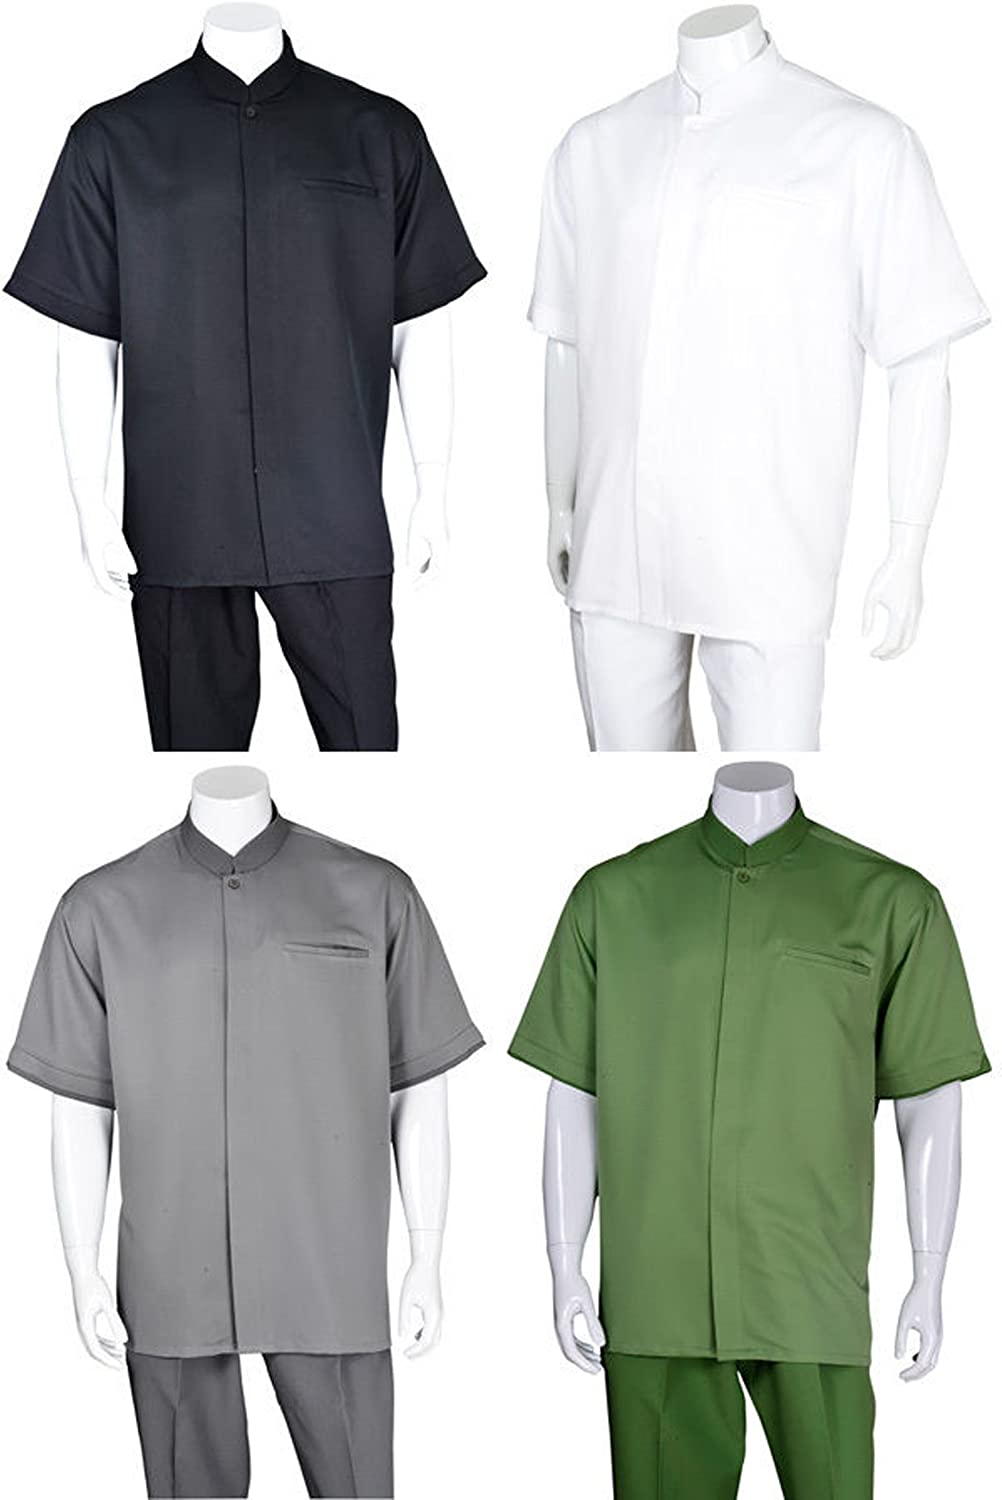 FORTINO LANDI Banded Collar Walking Suits in 4 Colors M2959